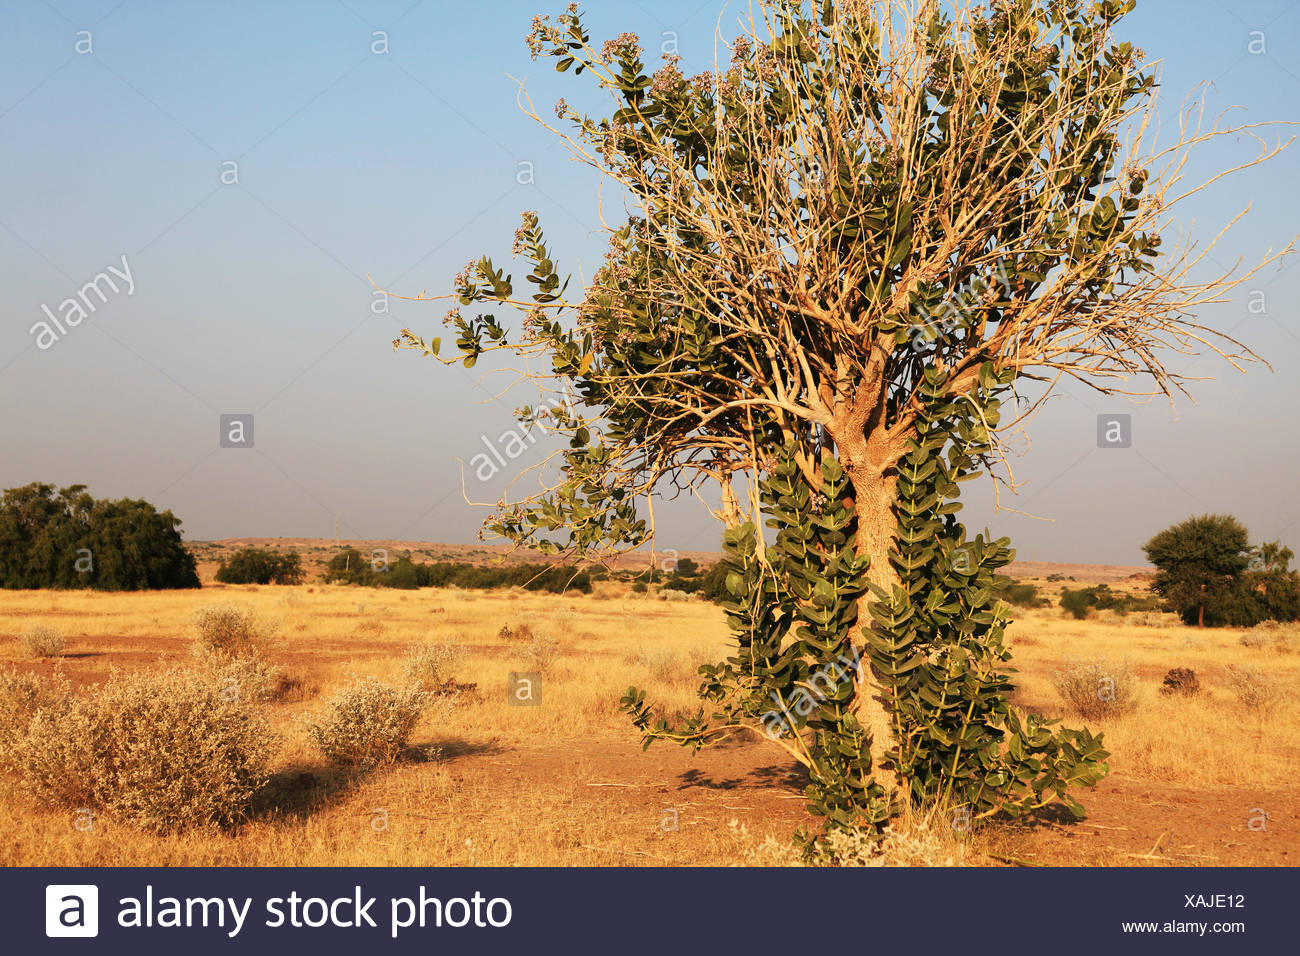 desert, wasteland, drought, water shortage, drought, deserted, water shortage, Stock Photo